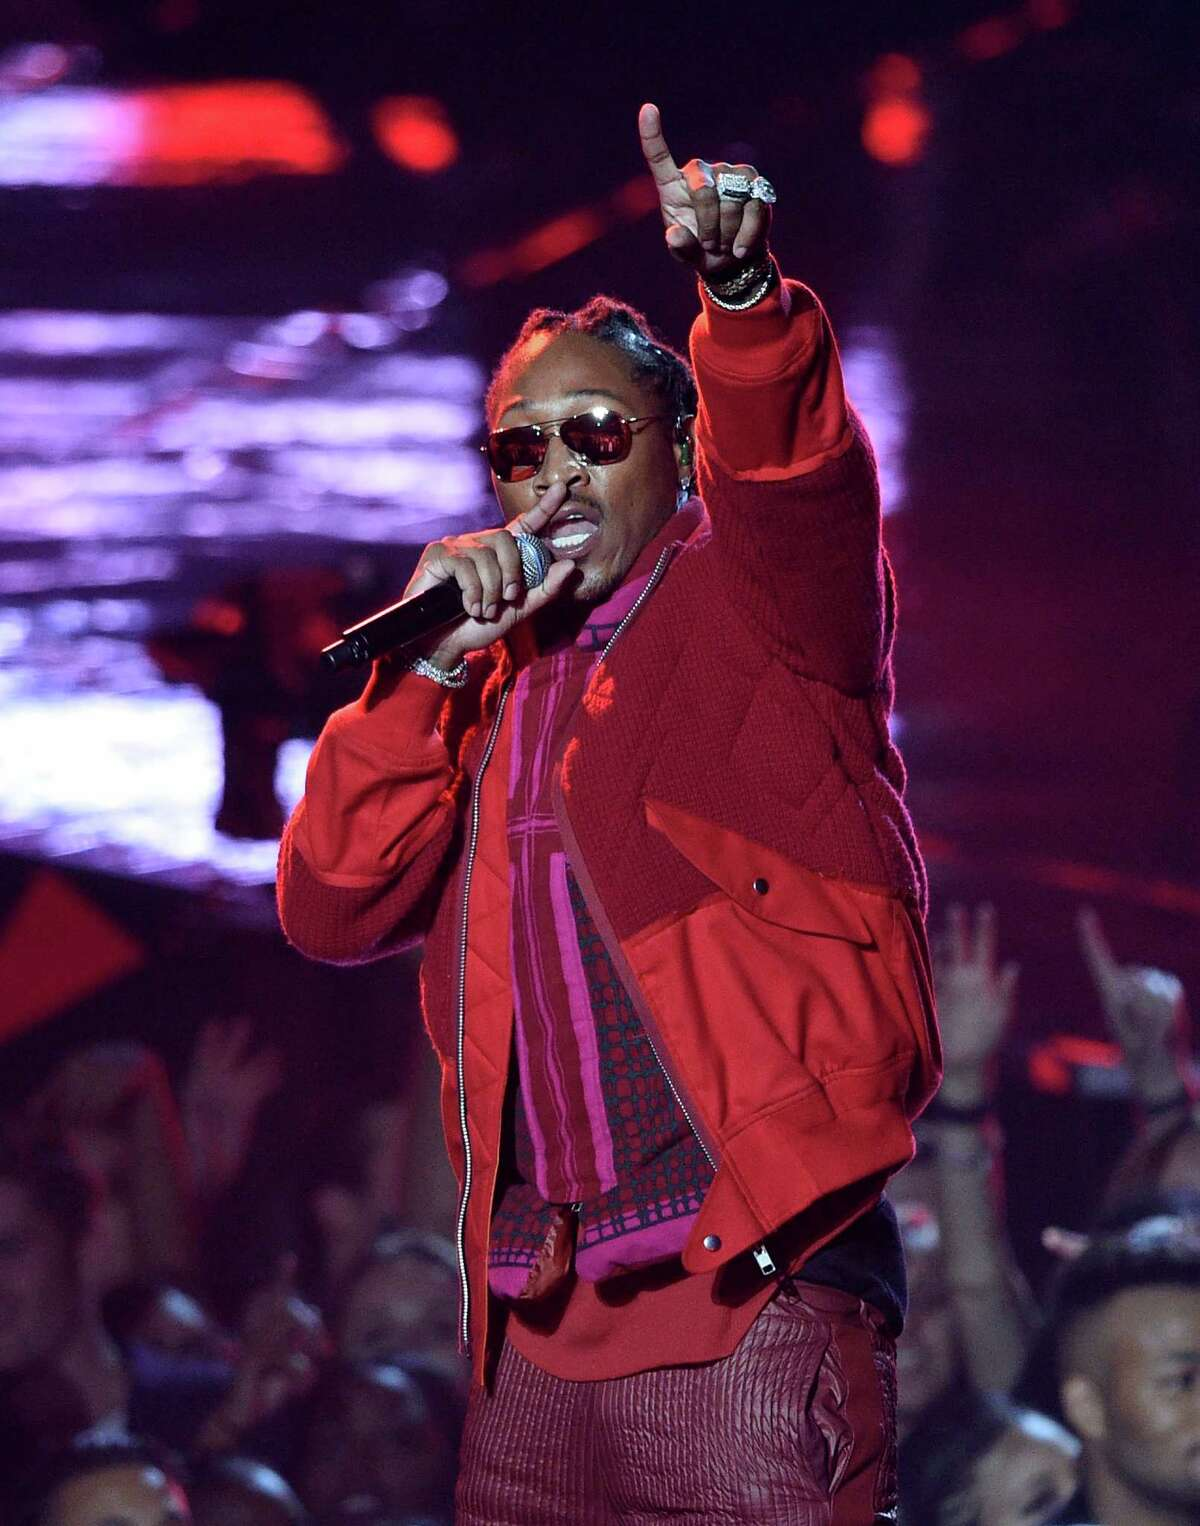 Future performs at the MTV Video Music Awards at Madison Square Garden on Sunday, Aug. 28, 2016, in New York. (Photo by Chris Pizzello/Invision/AP)